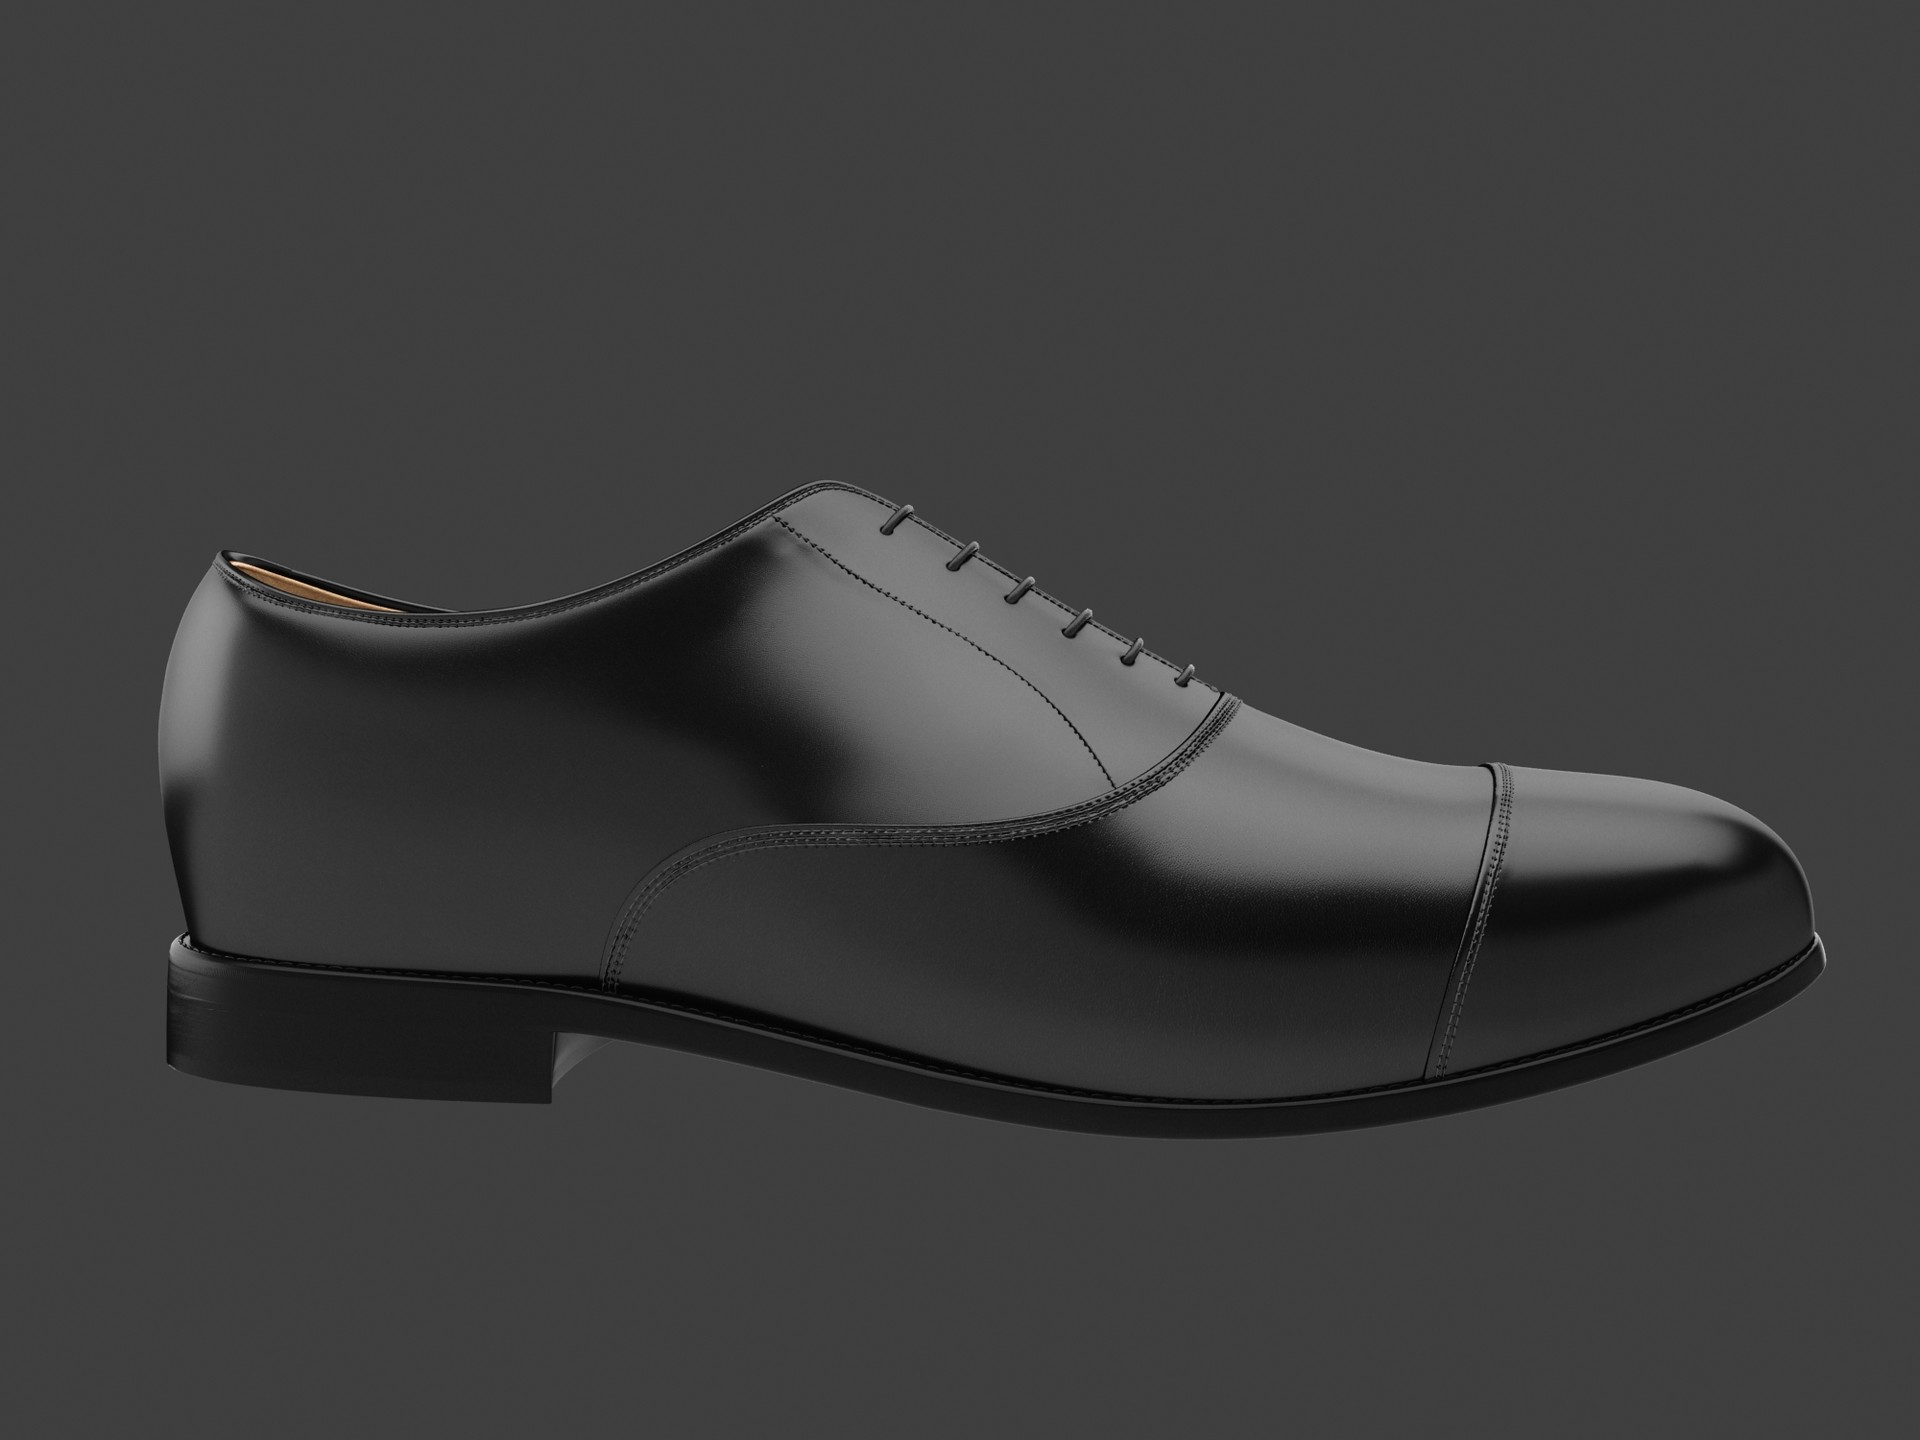 ArtStation - Shoes 3d Model, Bruno Gonçalves